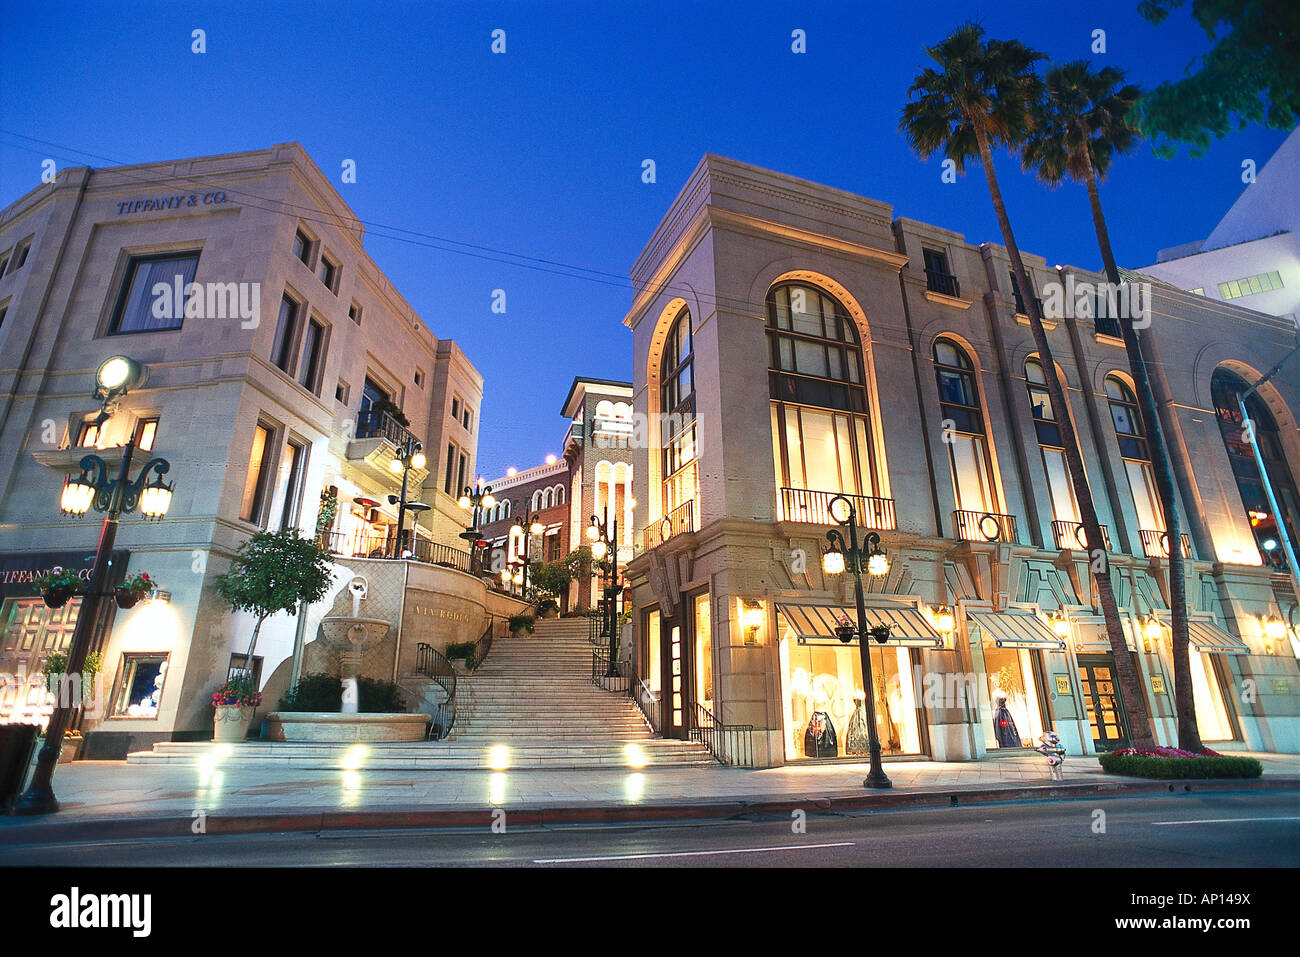 The deserted Wilshire Boulevard at night, Rodeo Drive, Beverly Hills, Los Angeles, USA - Stock Image